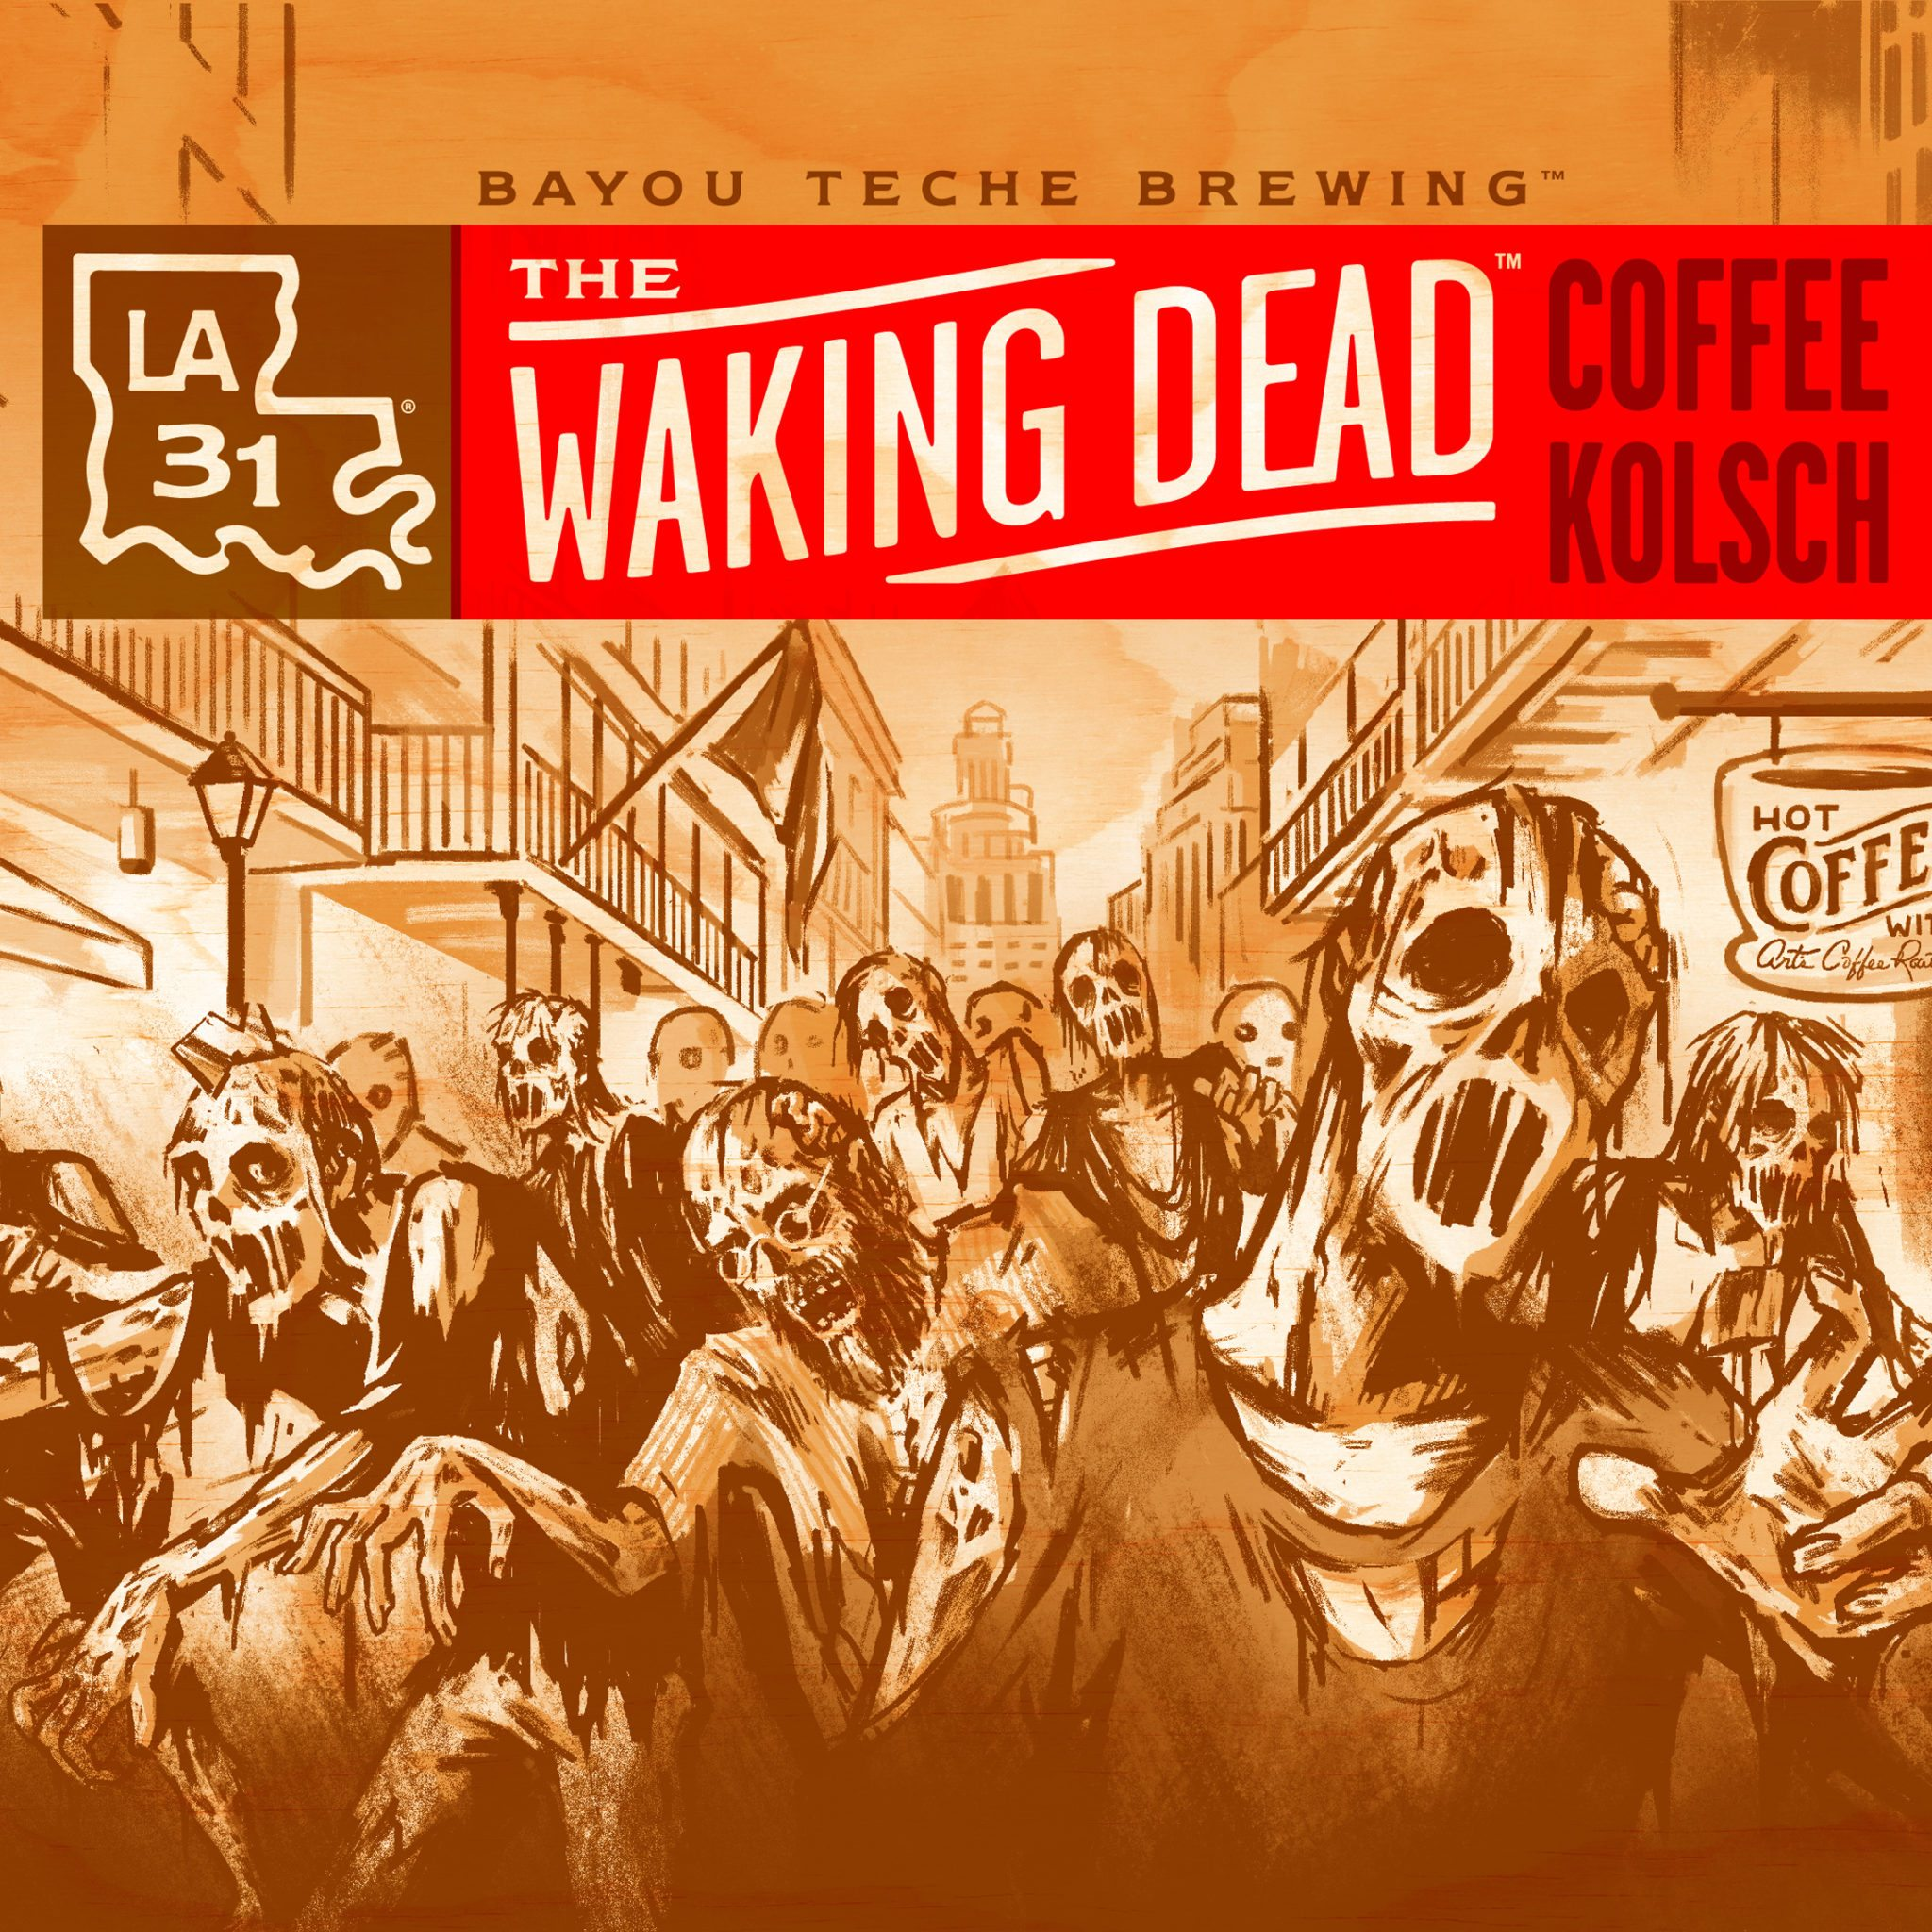 Our Beers | Bayou Teche Brewing